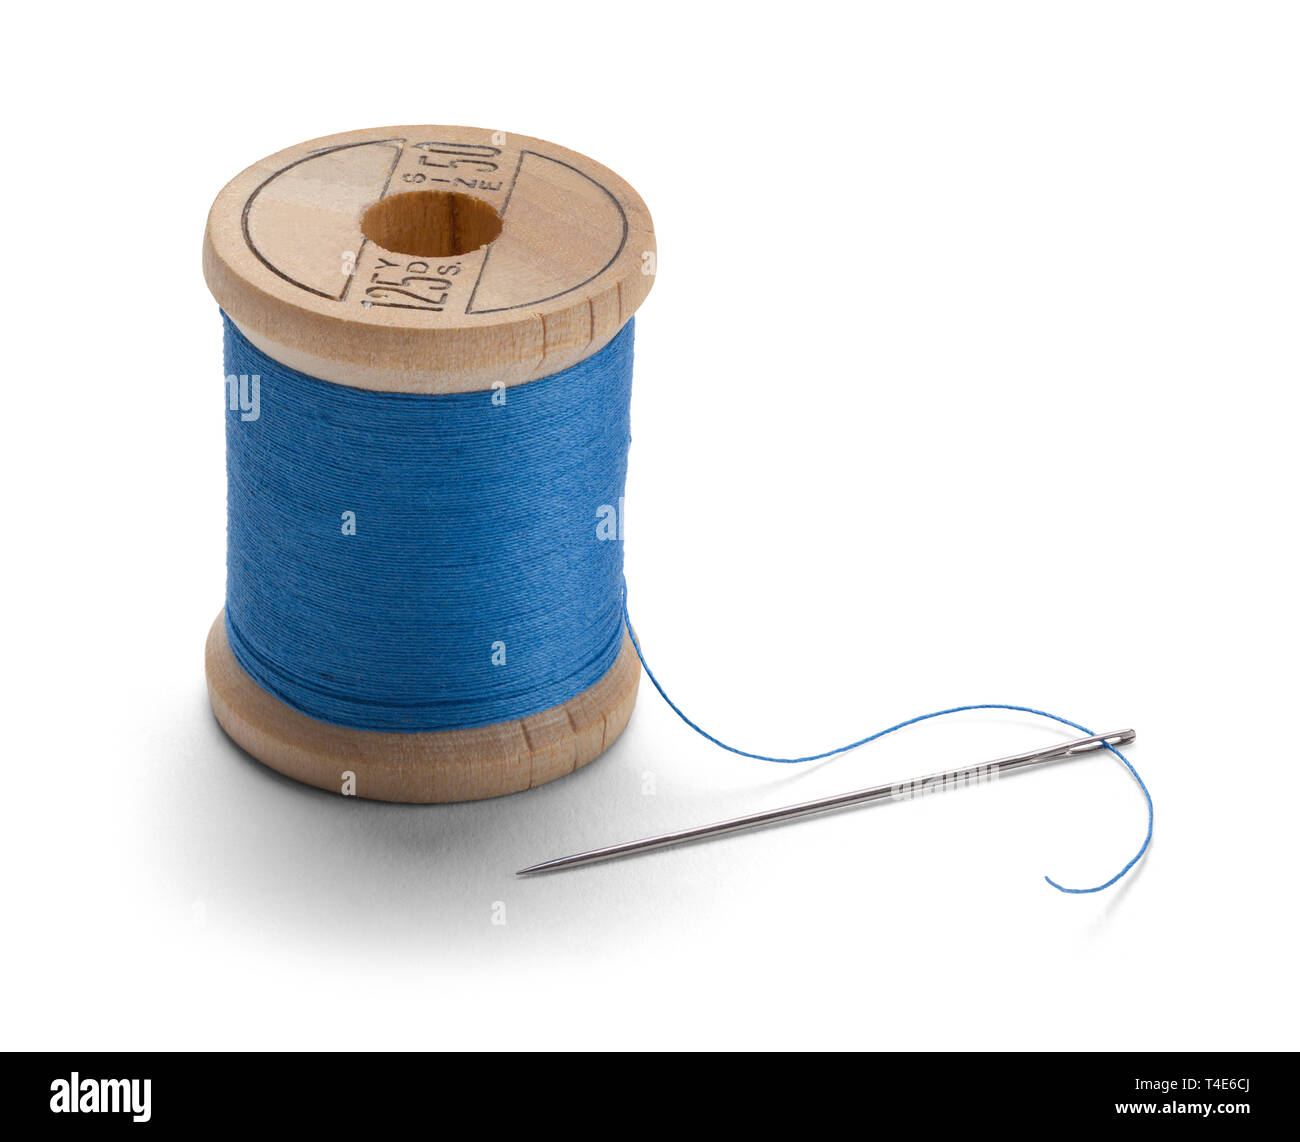 Blue Thread on Wood Spool with Needle Isolated on White Background. - Stock Image